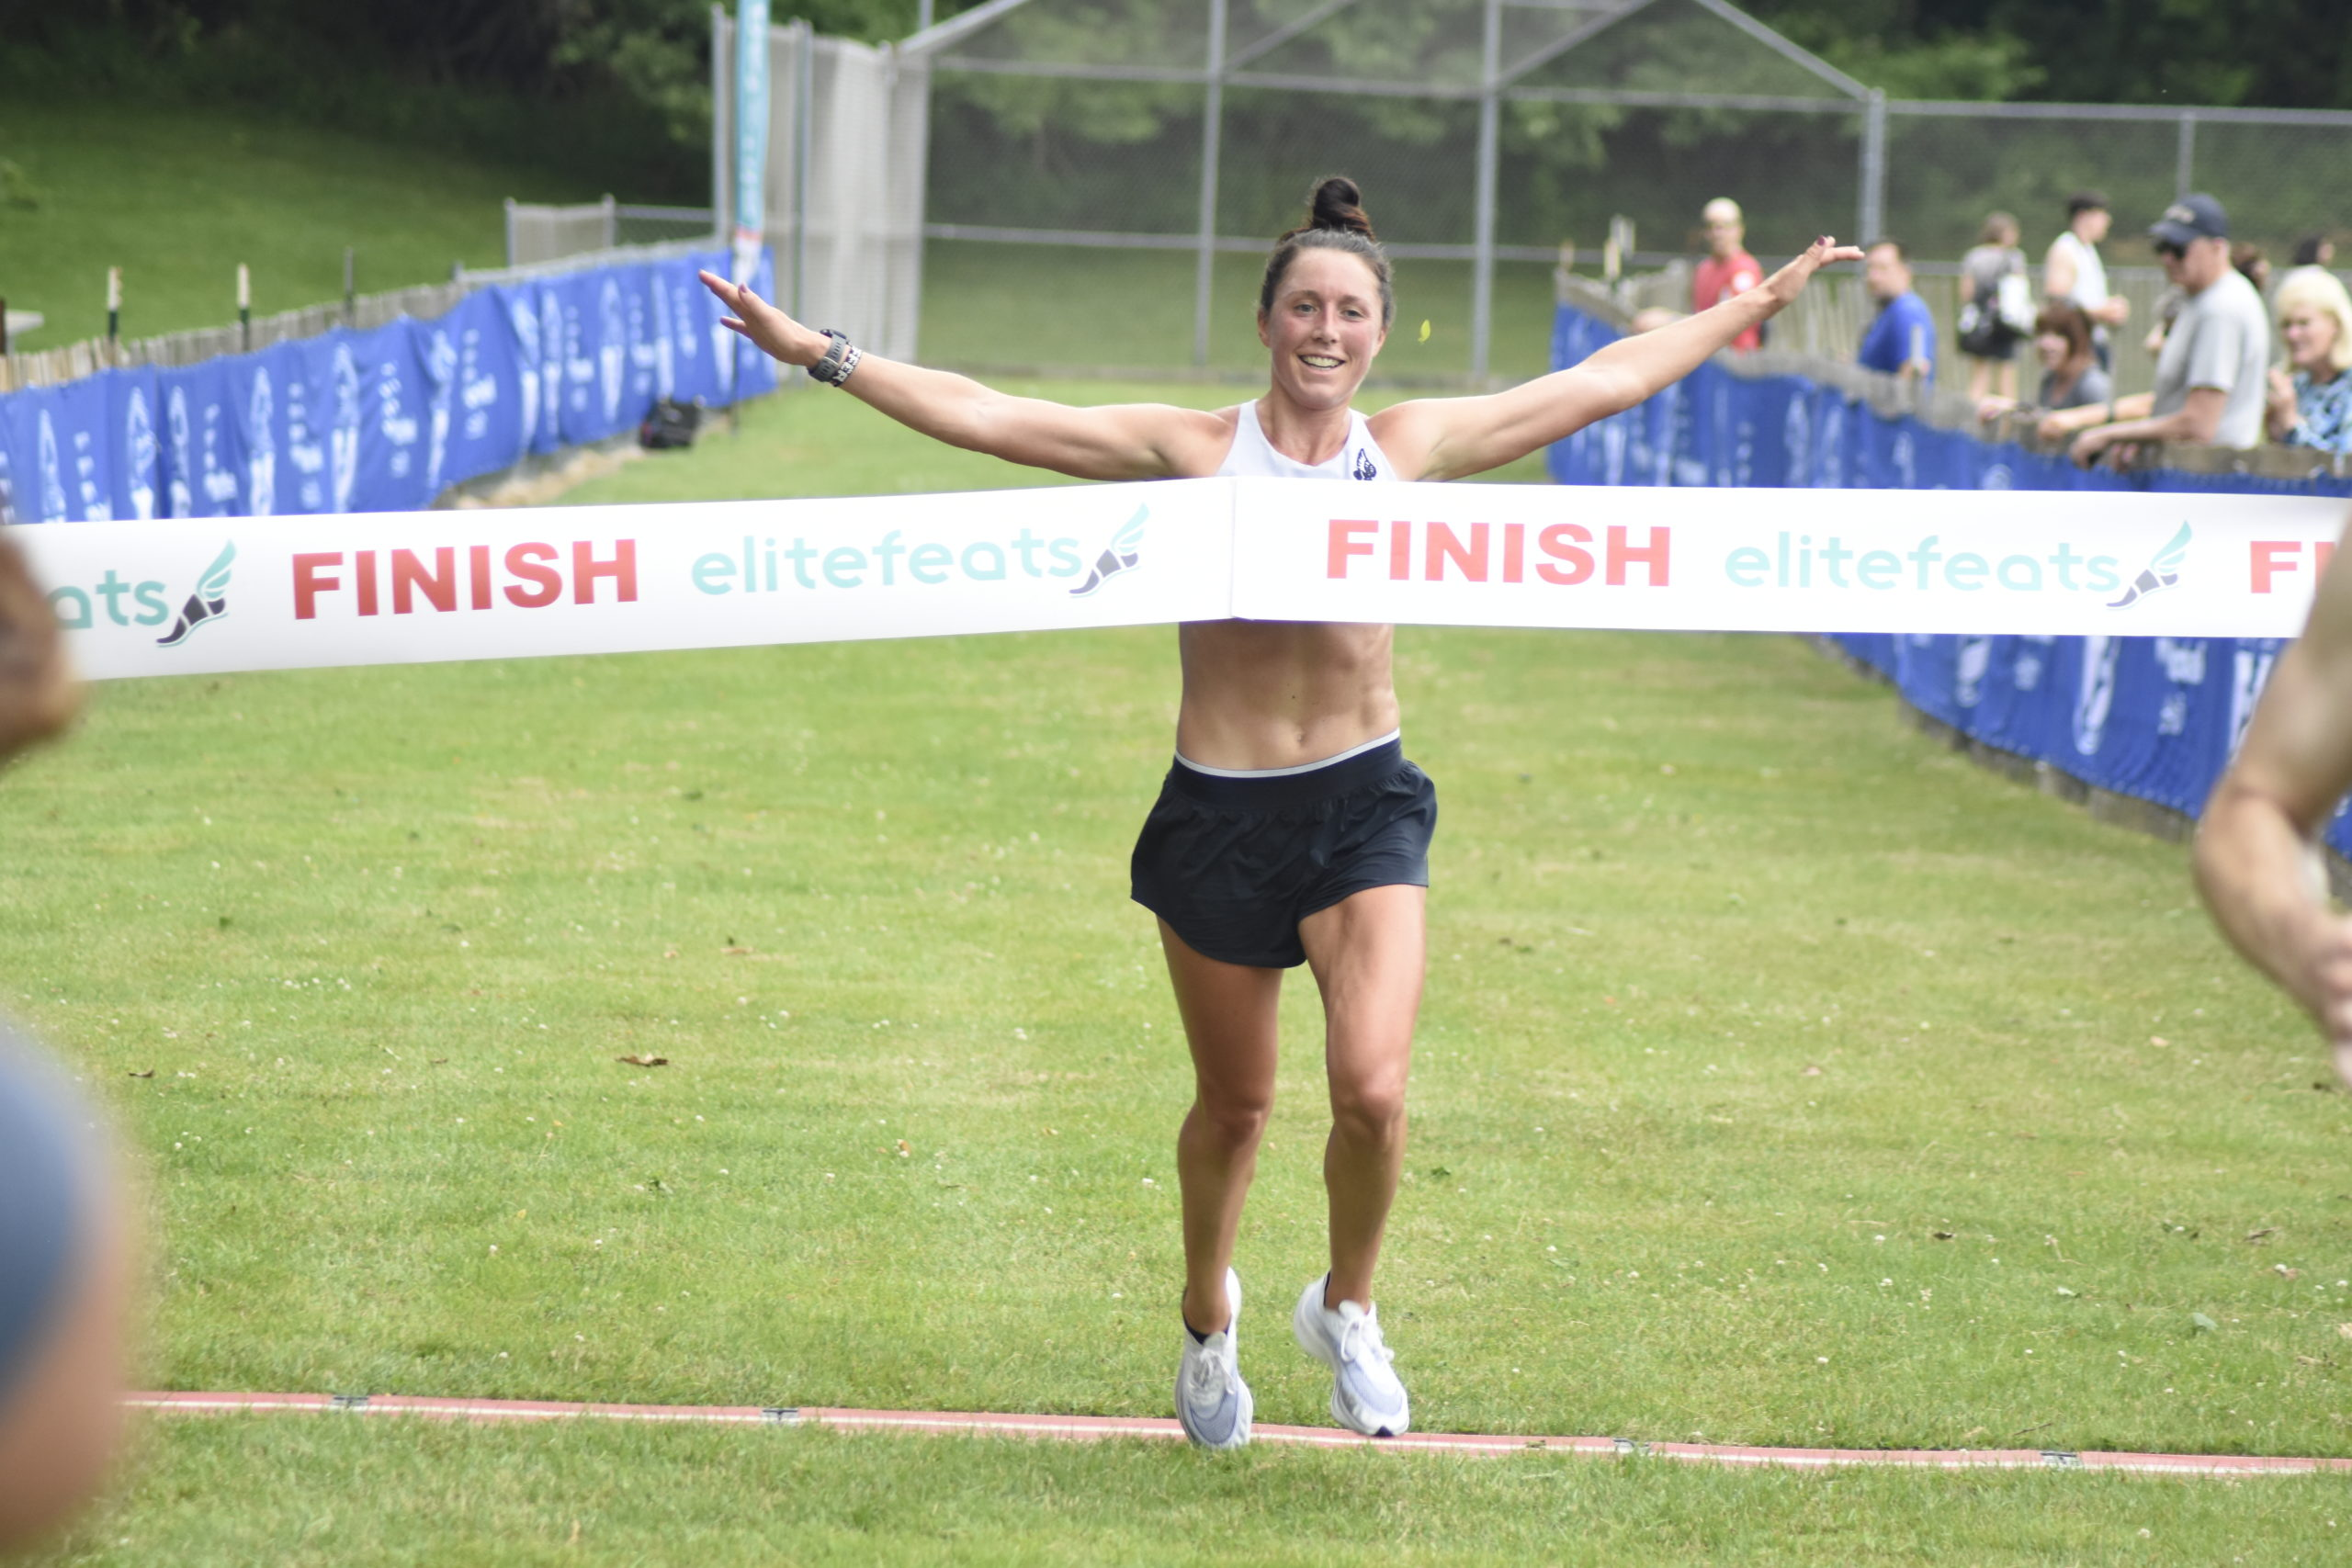 Allie Kieffer, 33, of West Islip was the women's champion of the Shelter Island 10K on Saturday.